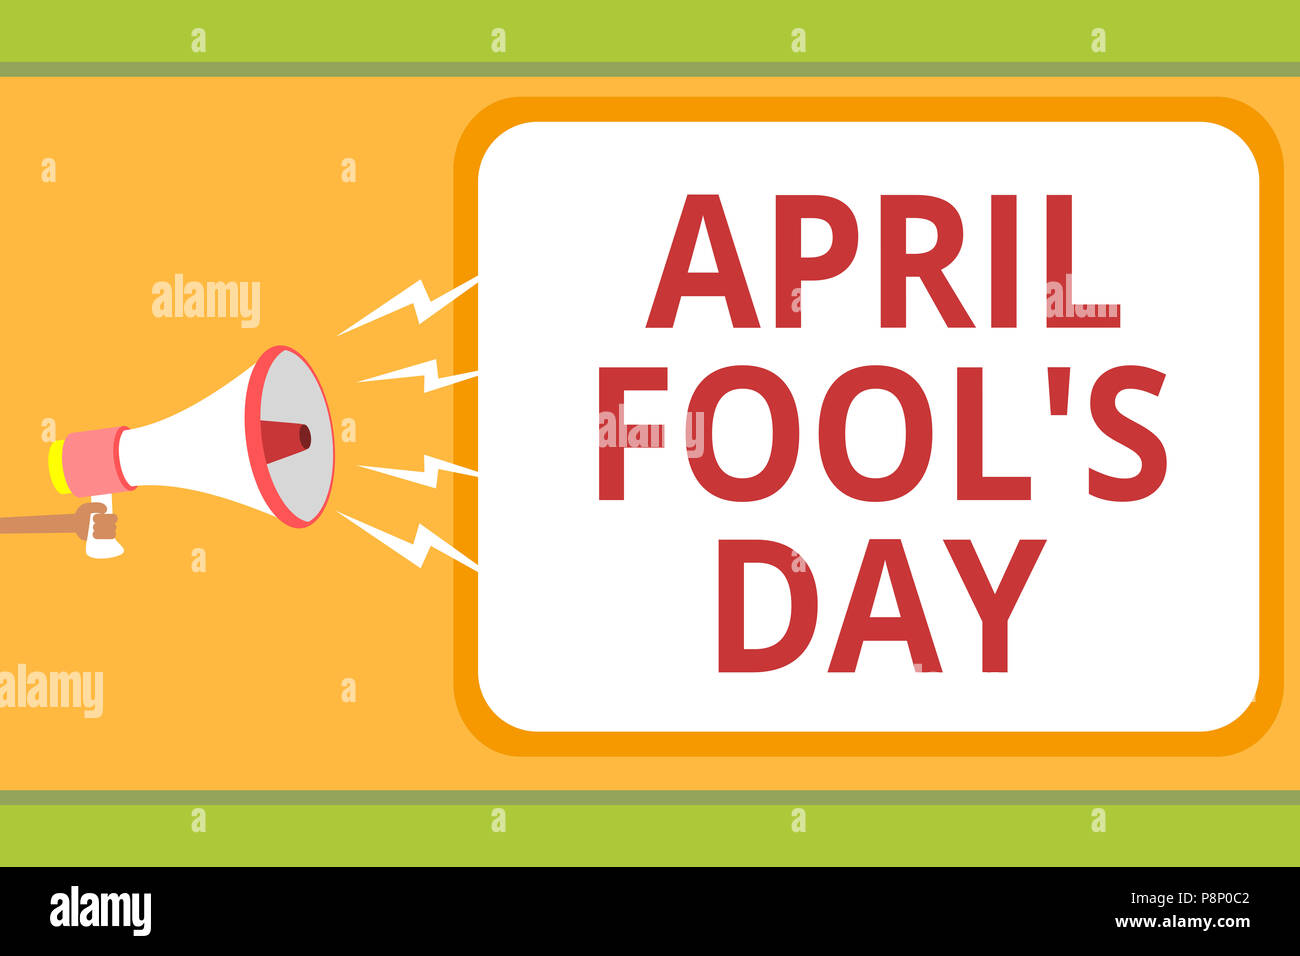 Writing note showing April Fool s is Day. Business photo showcasing Practical jokes humor pranks Celebration funny foolish Message idea invention boxe - Stock Image